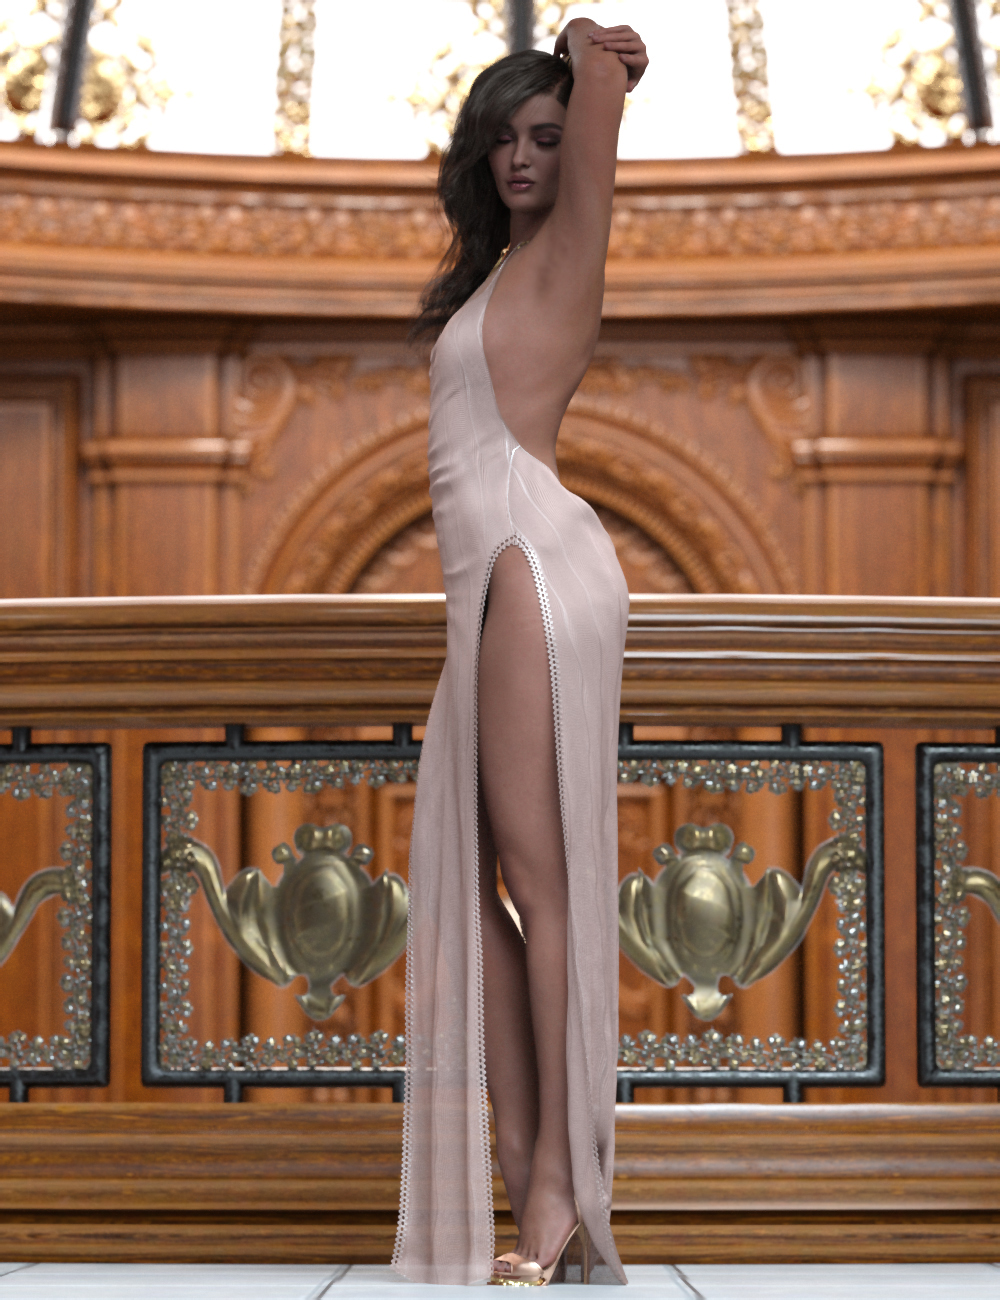 Gala Poses for Genesis Female 8.1 by: Ensary, 3D Models by Daz 3D